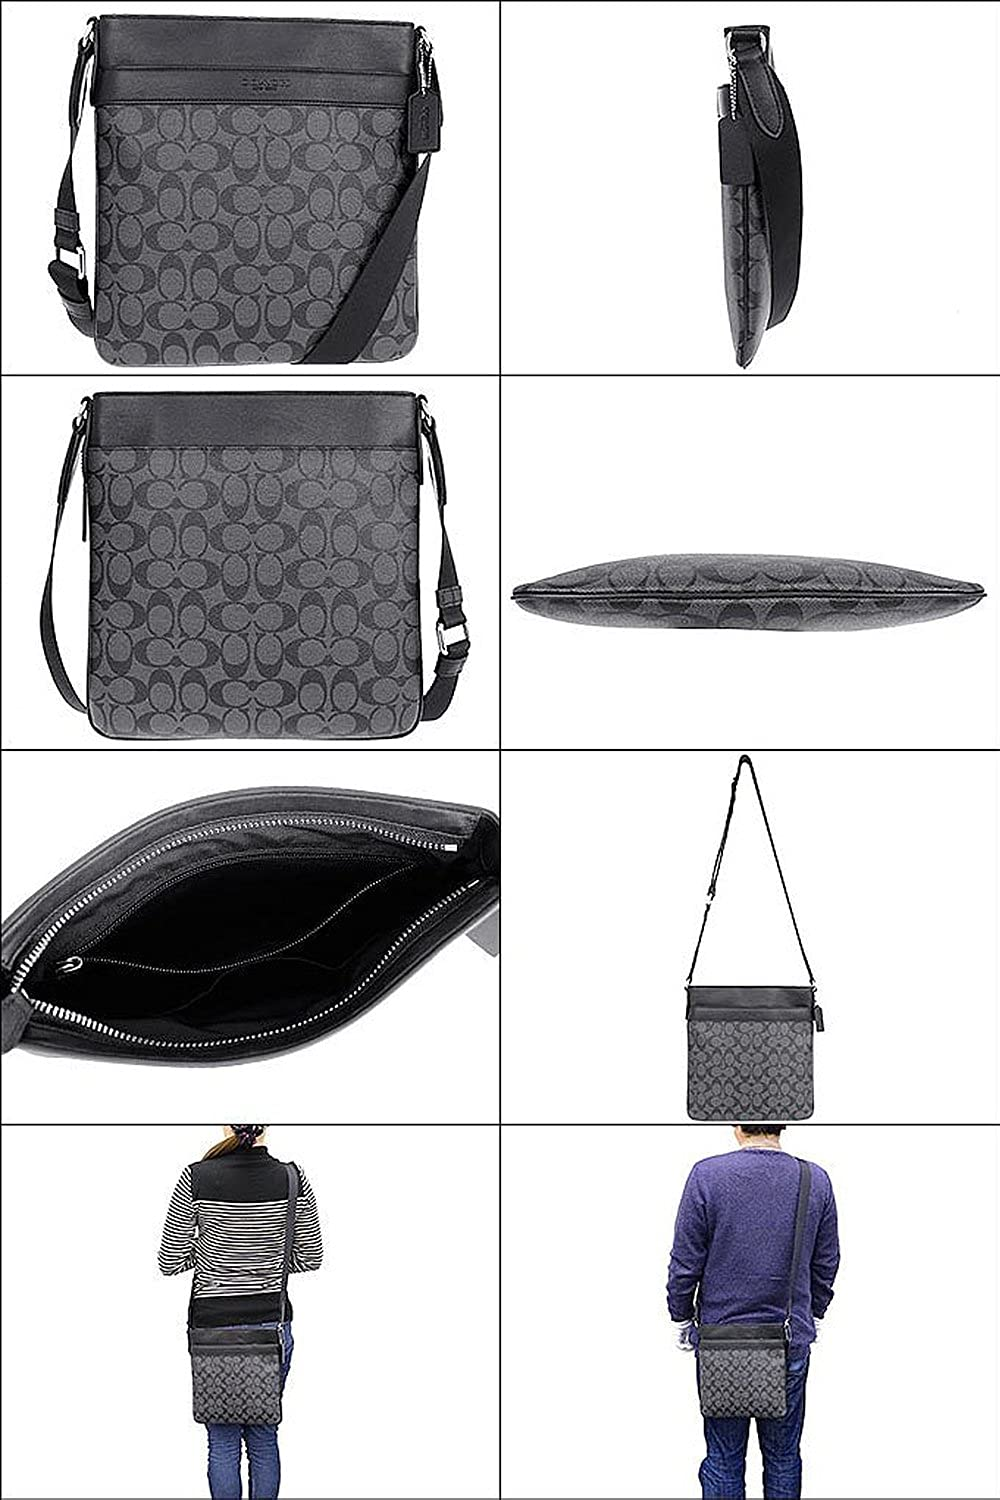 137a2e62b Amazon.com: COACH men's shoulder bag F71877 charcoal/black Bowery signature  crossbody: Shoes